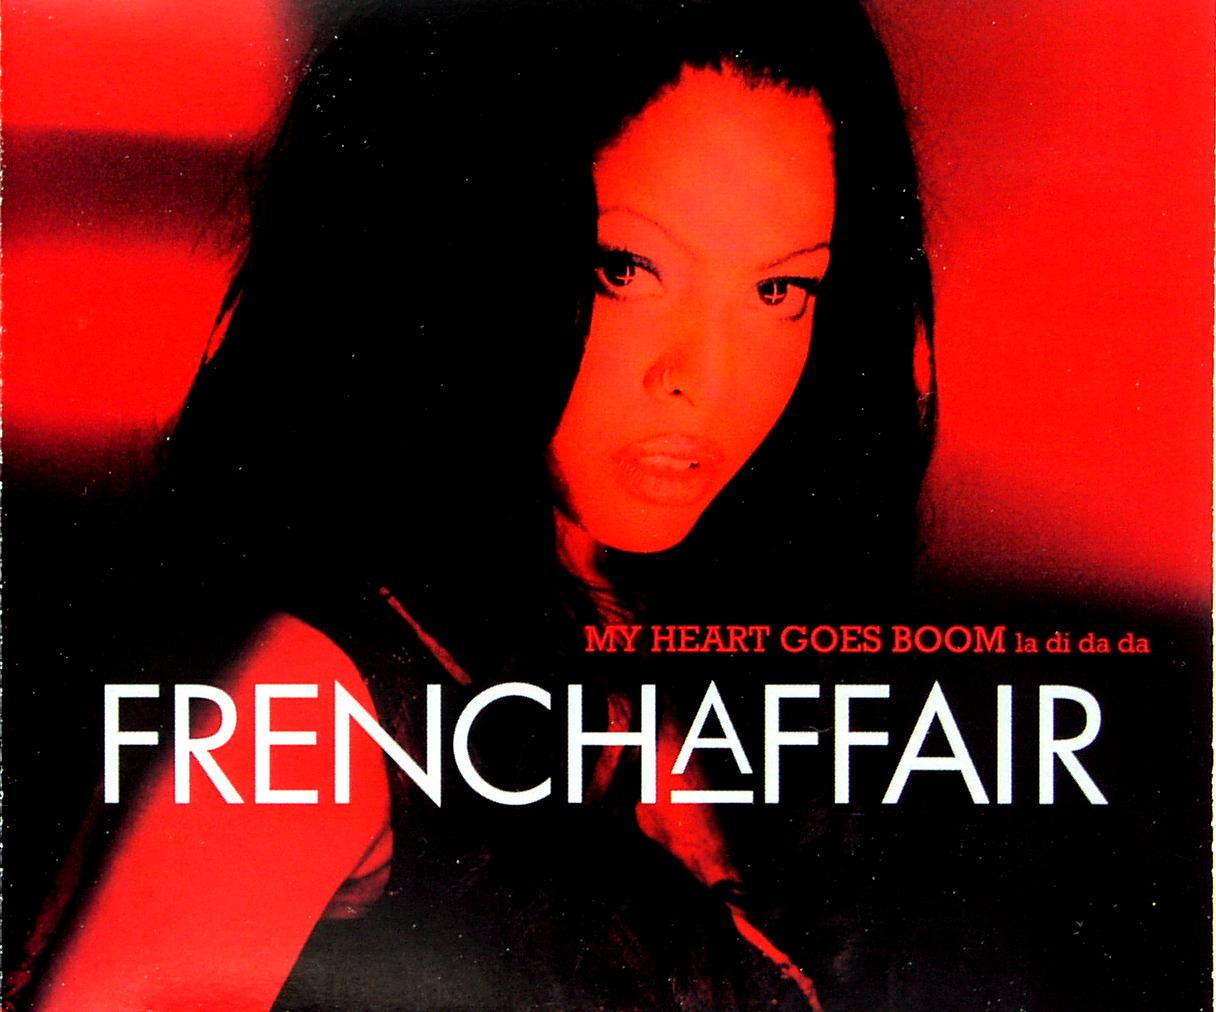 FRENCH AFFAIR - My Heart Goes Boom (Ladidada) - MCD